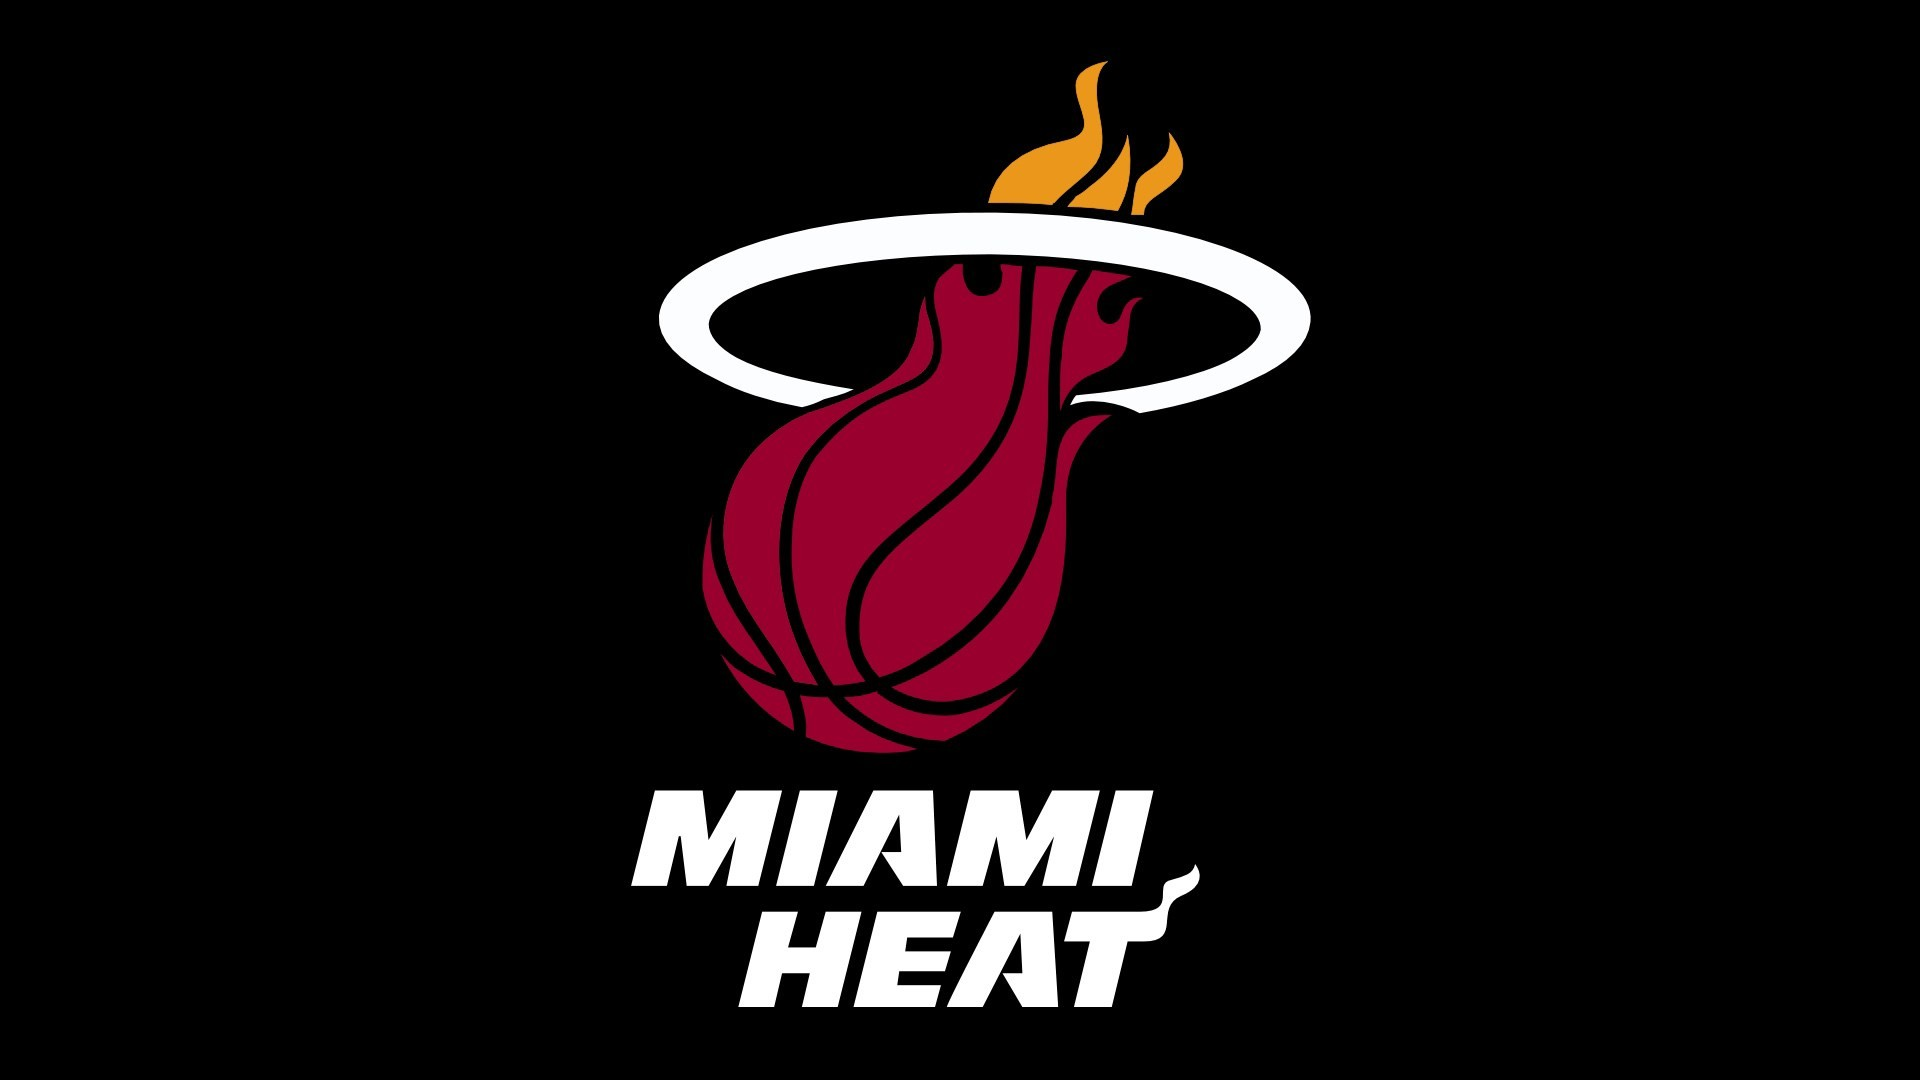 miami heat logo wallpaper 2018 ·①